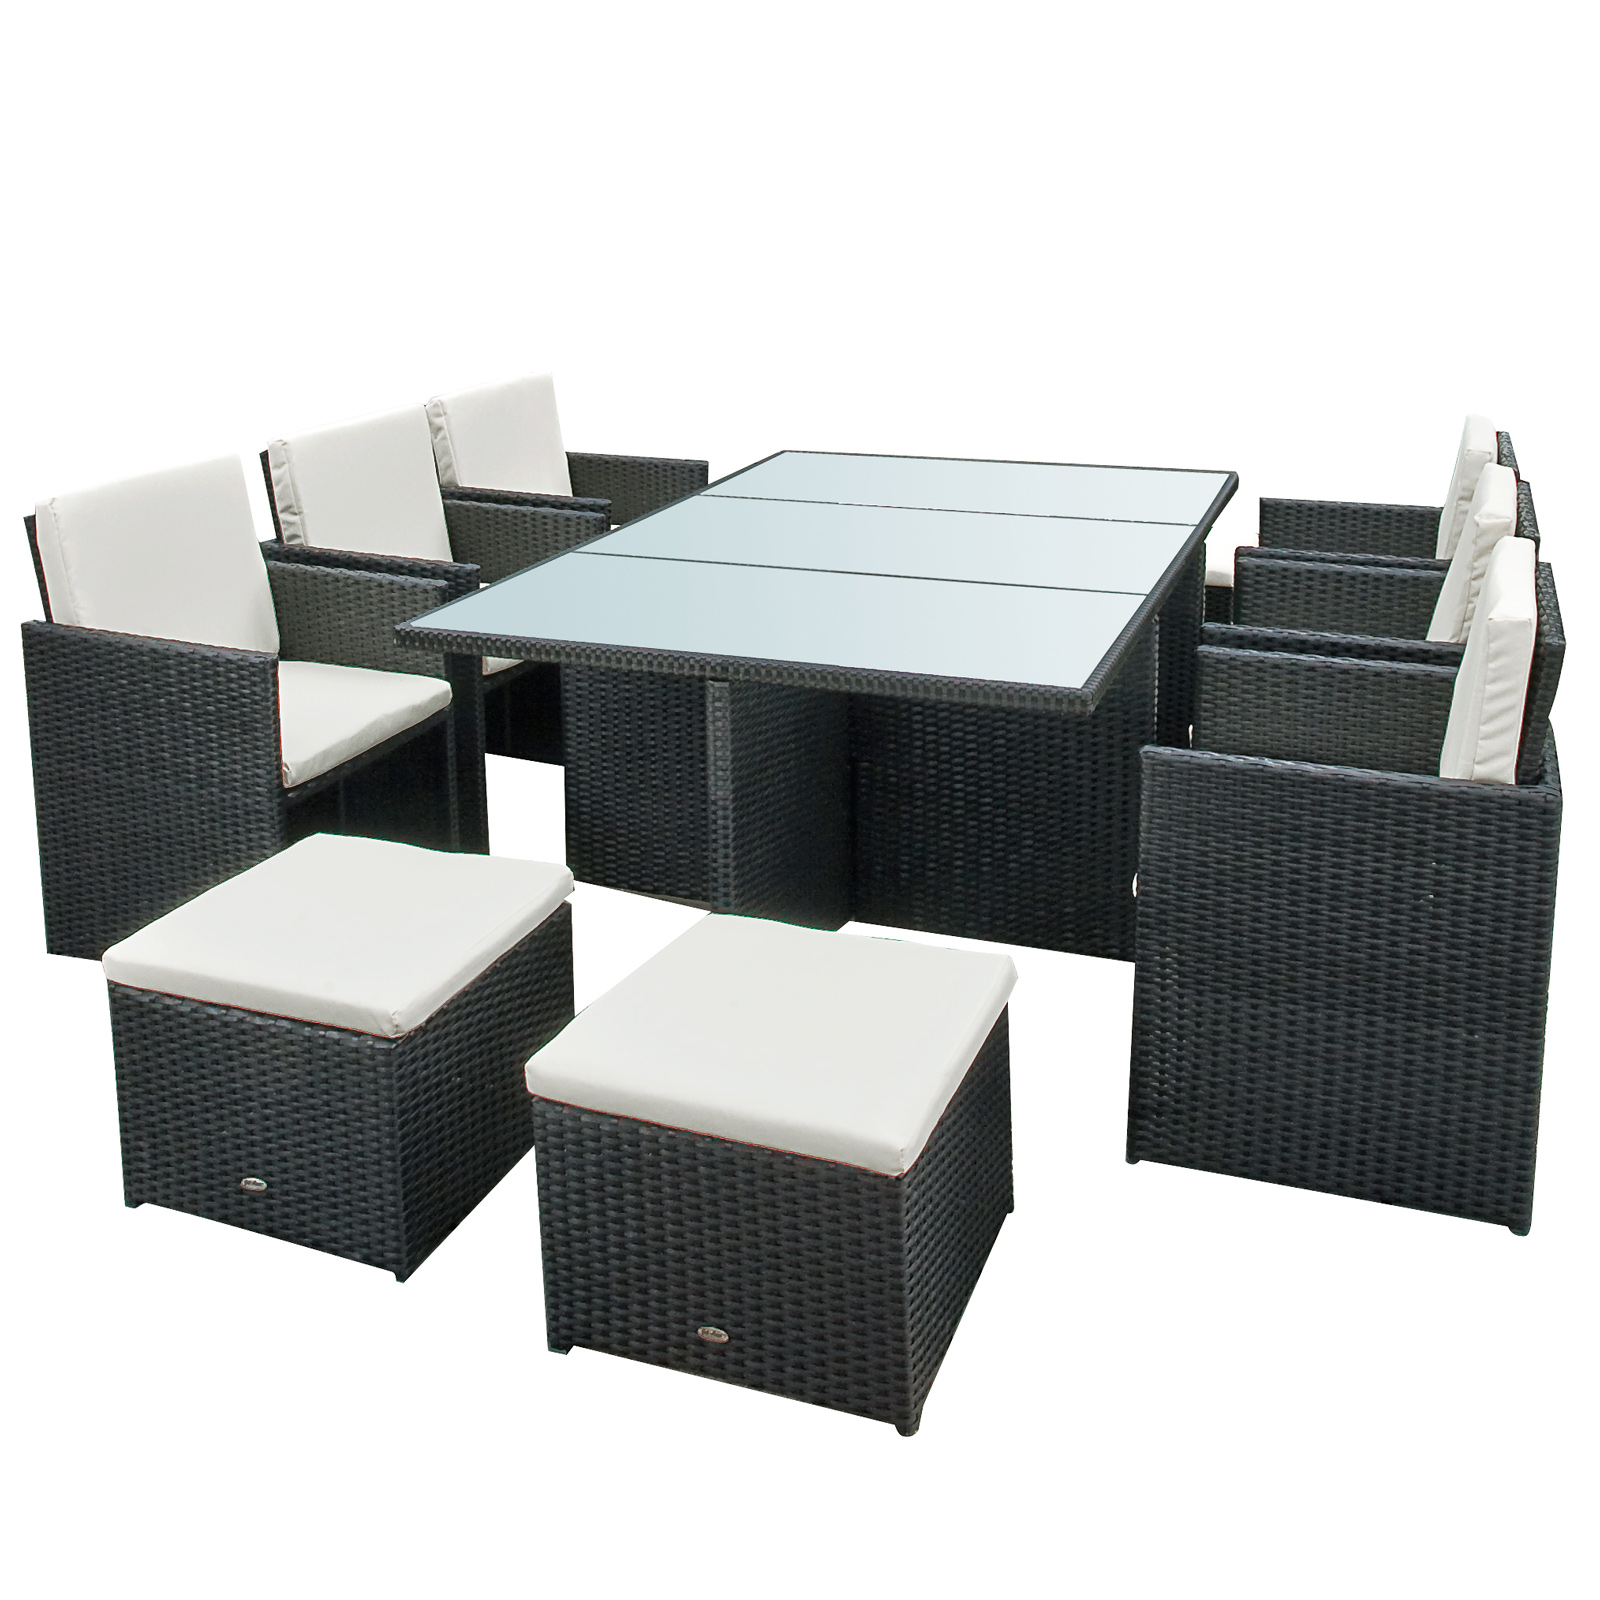 poly rattan gartenm bel garten garnitur bali gartenset 6. Black Bedroom Furniture Sets. Home Design Ideas